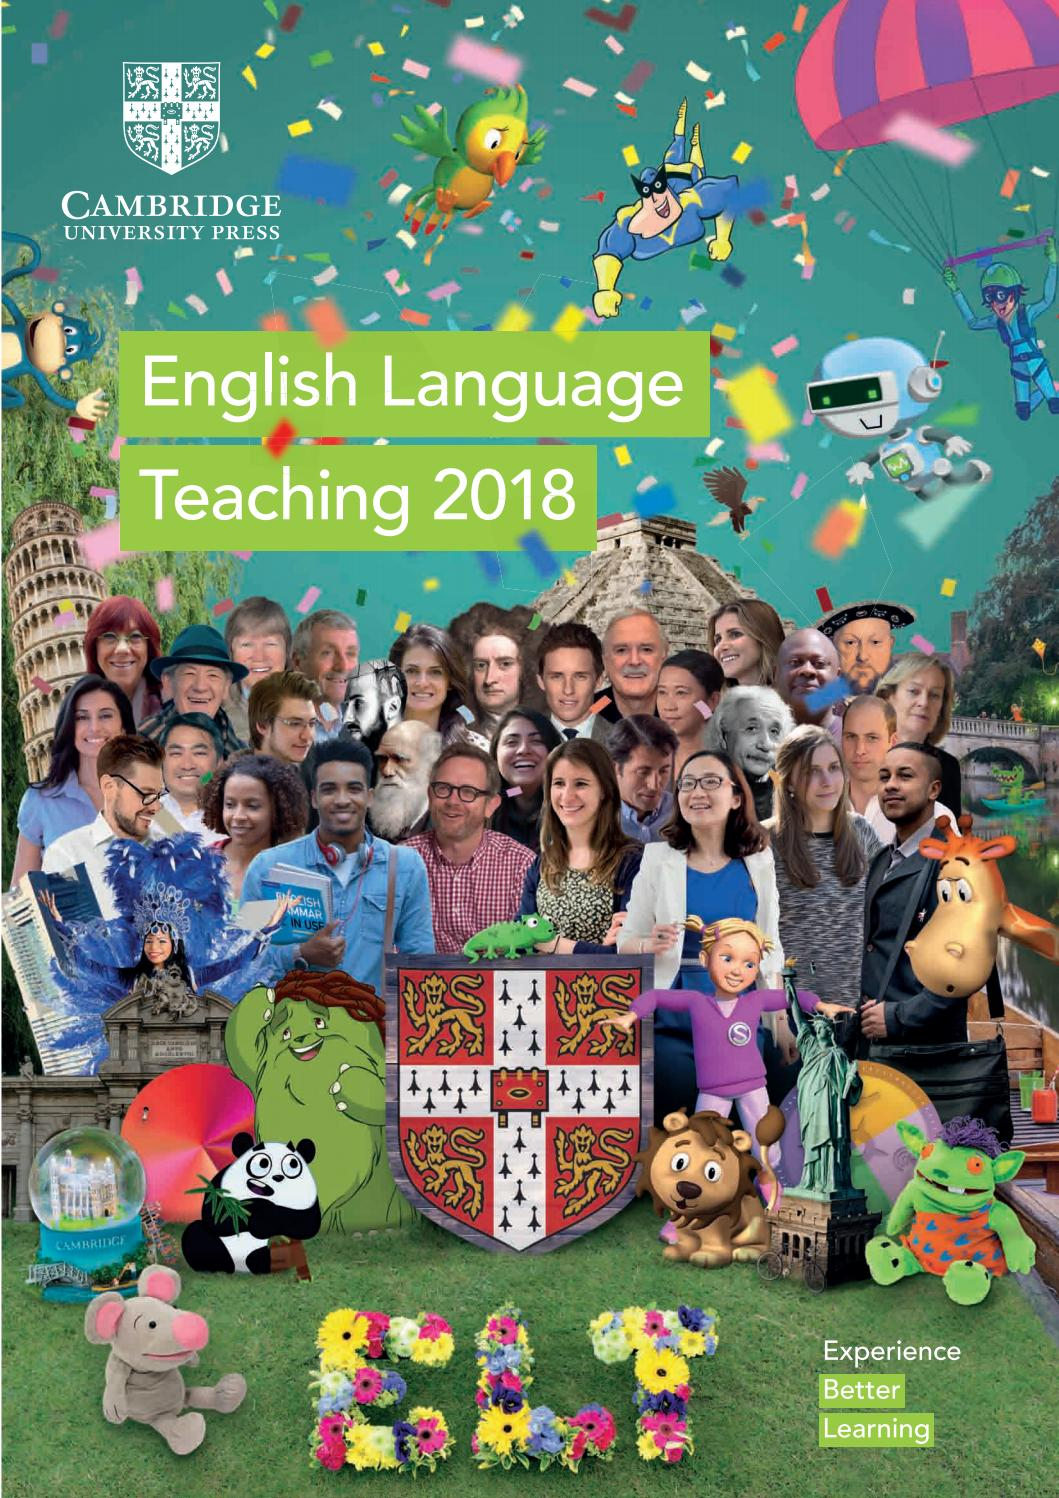 a109ee54f522 2018 ELT Cambridge University Press Catalogue Asia by Cambridge University  Press - issuu